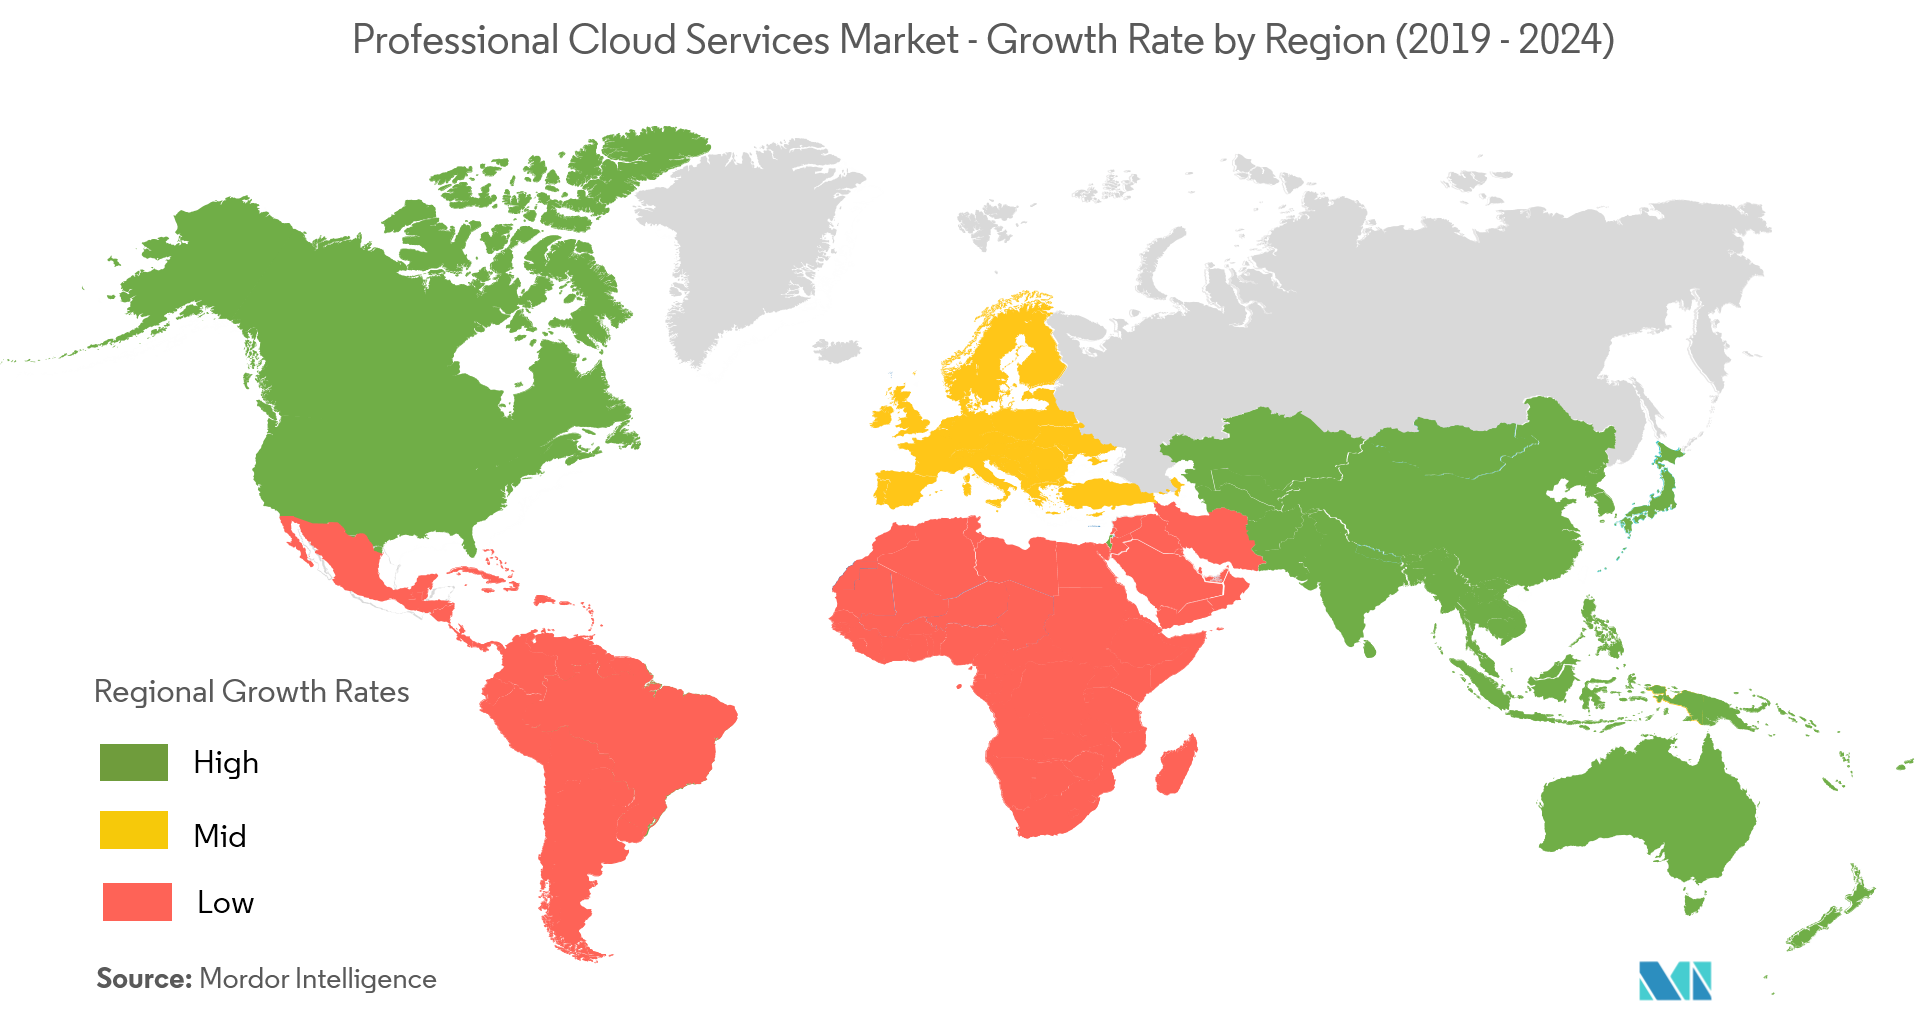 market for professional cloud services industry